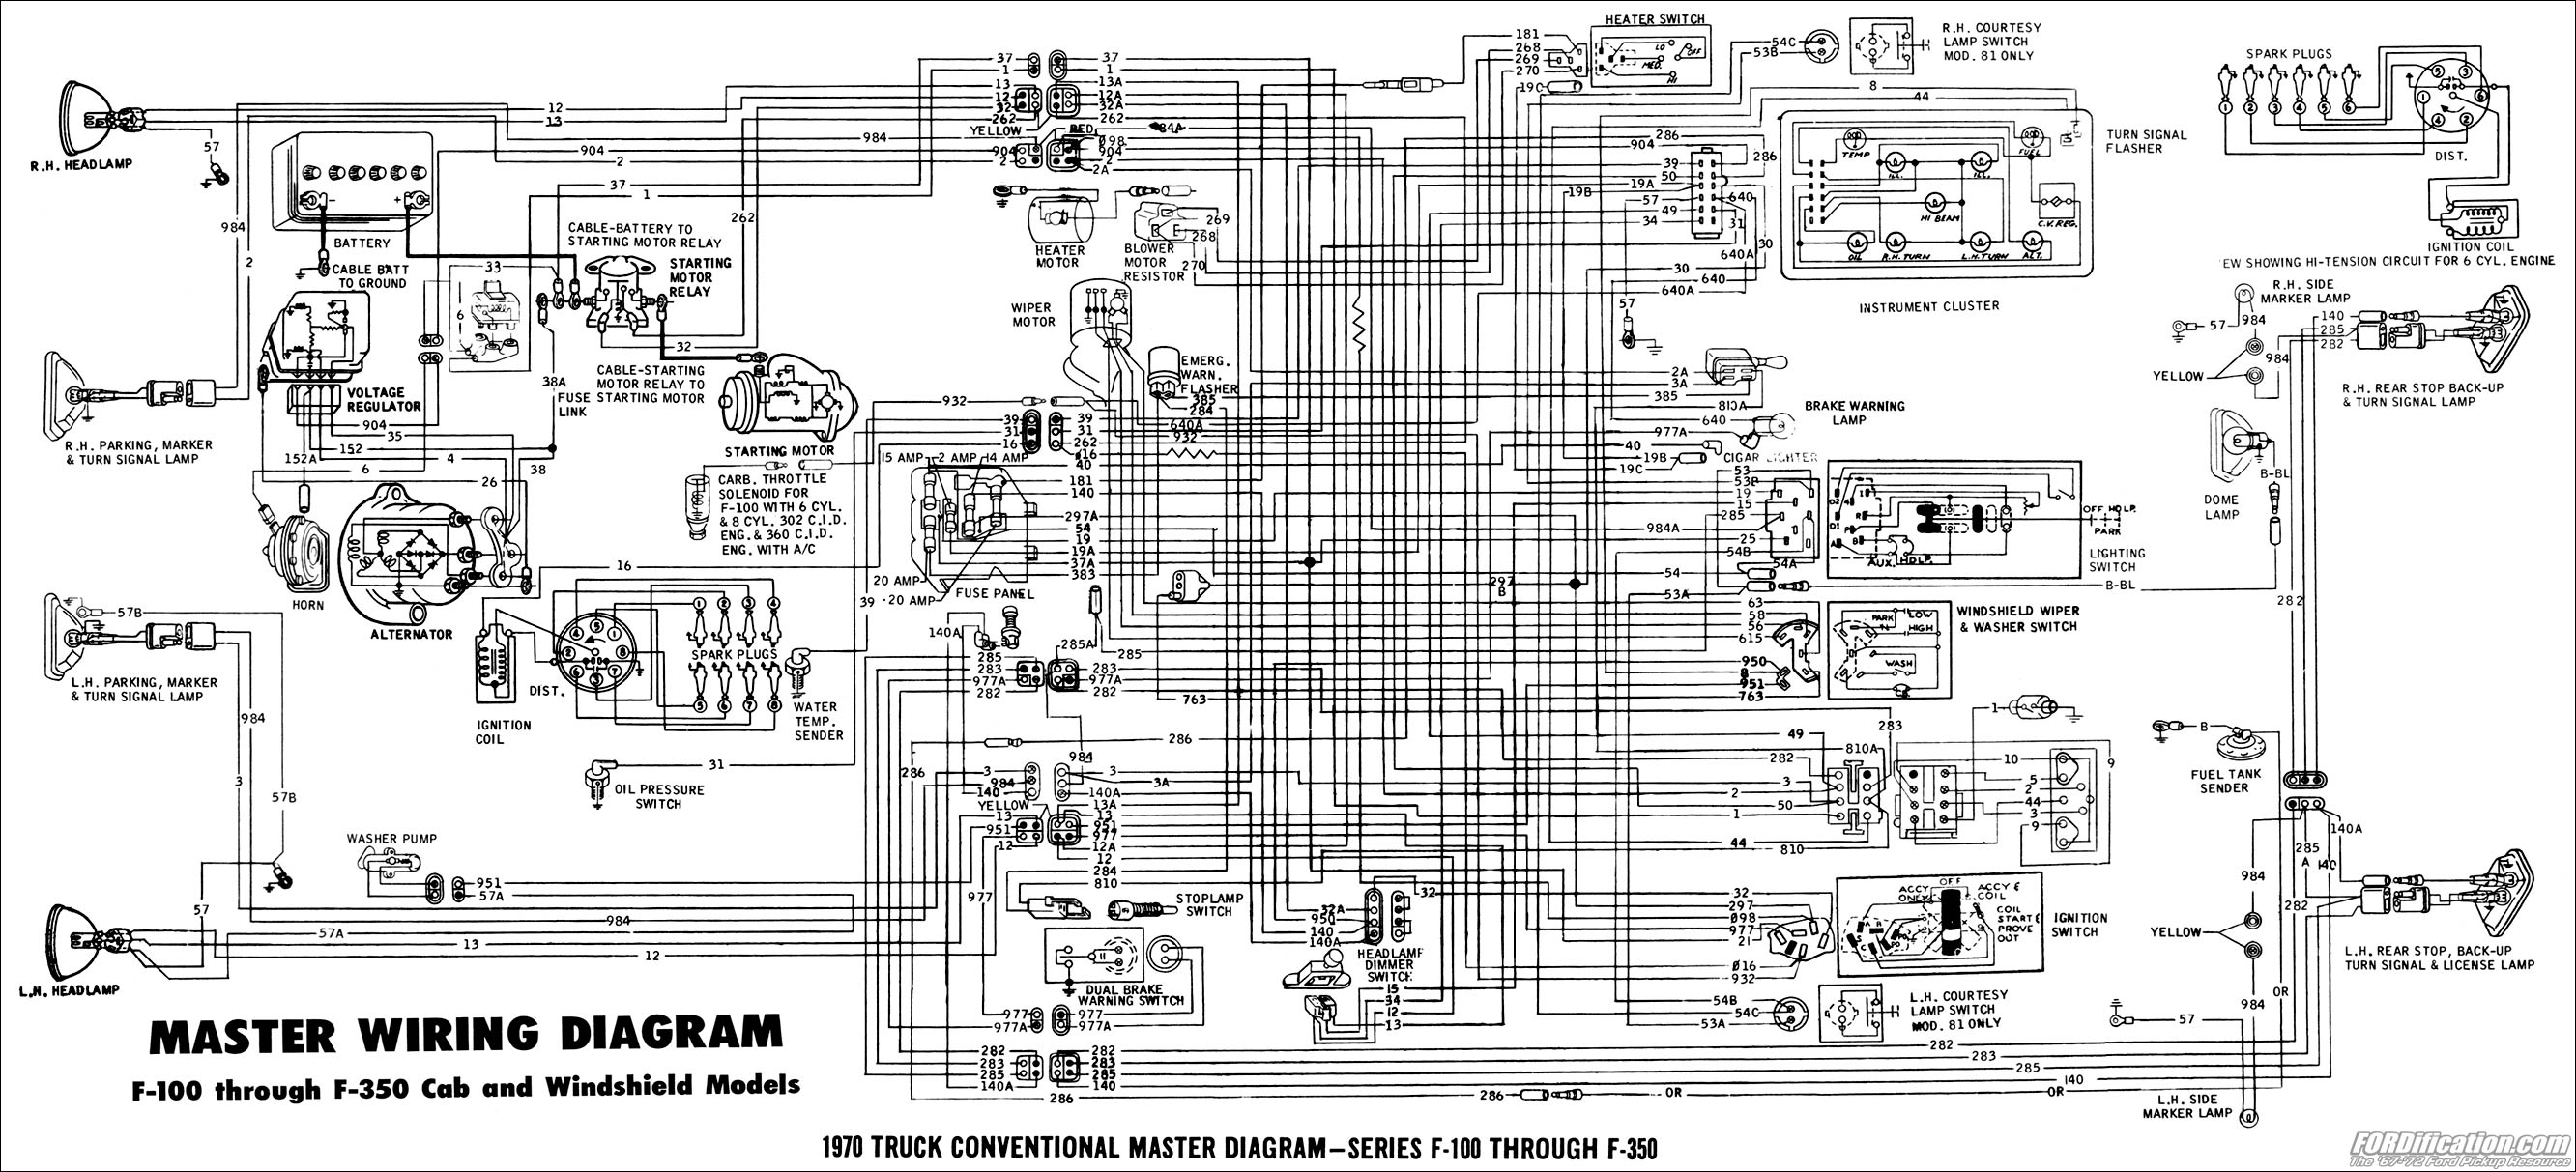 Wiring Diagram 1970 Ford F 250 Opinions About Wiring Diagram \u2022 Brake  Warning Light Wiring Diagram 2006 Ford Truck Wiring Diagram